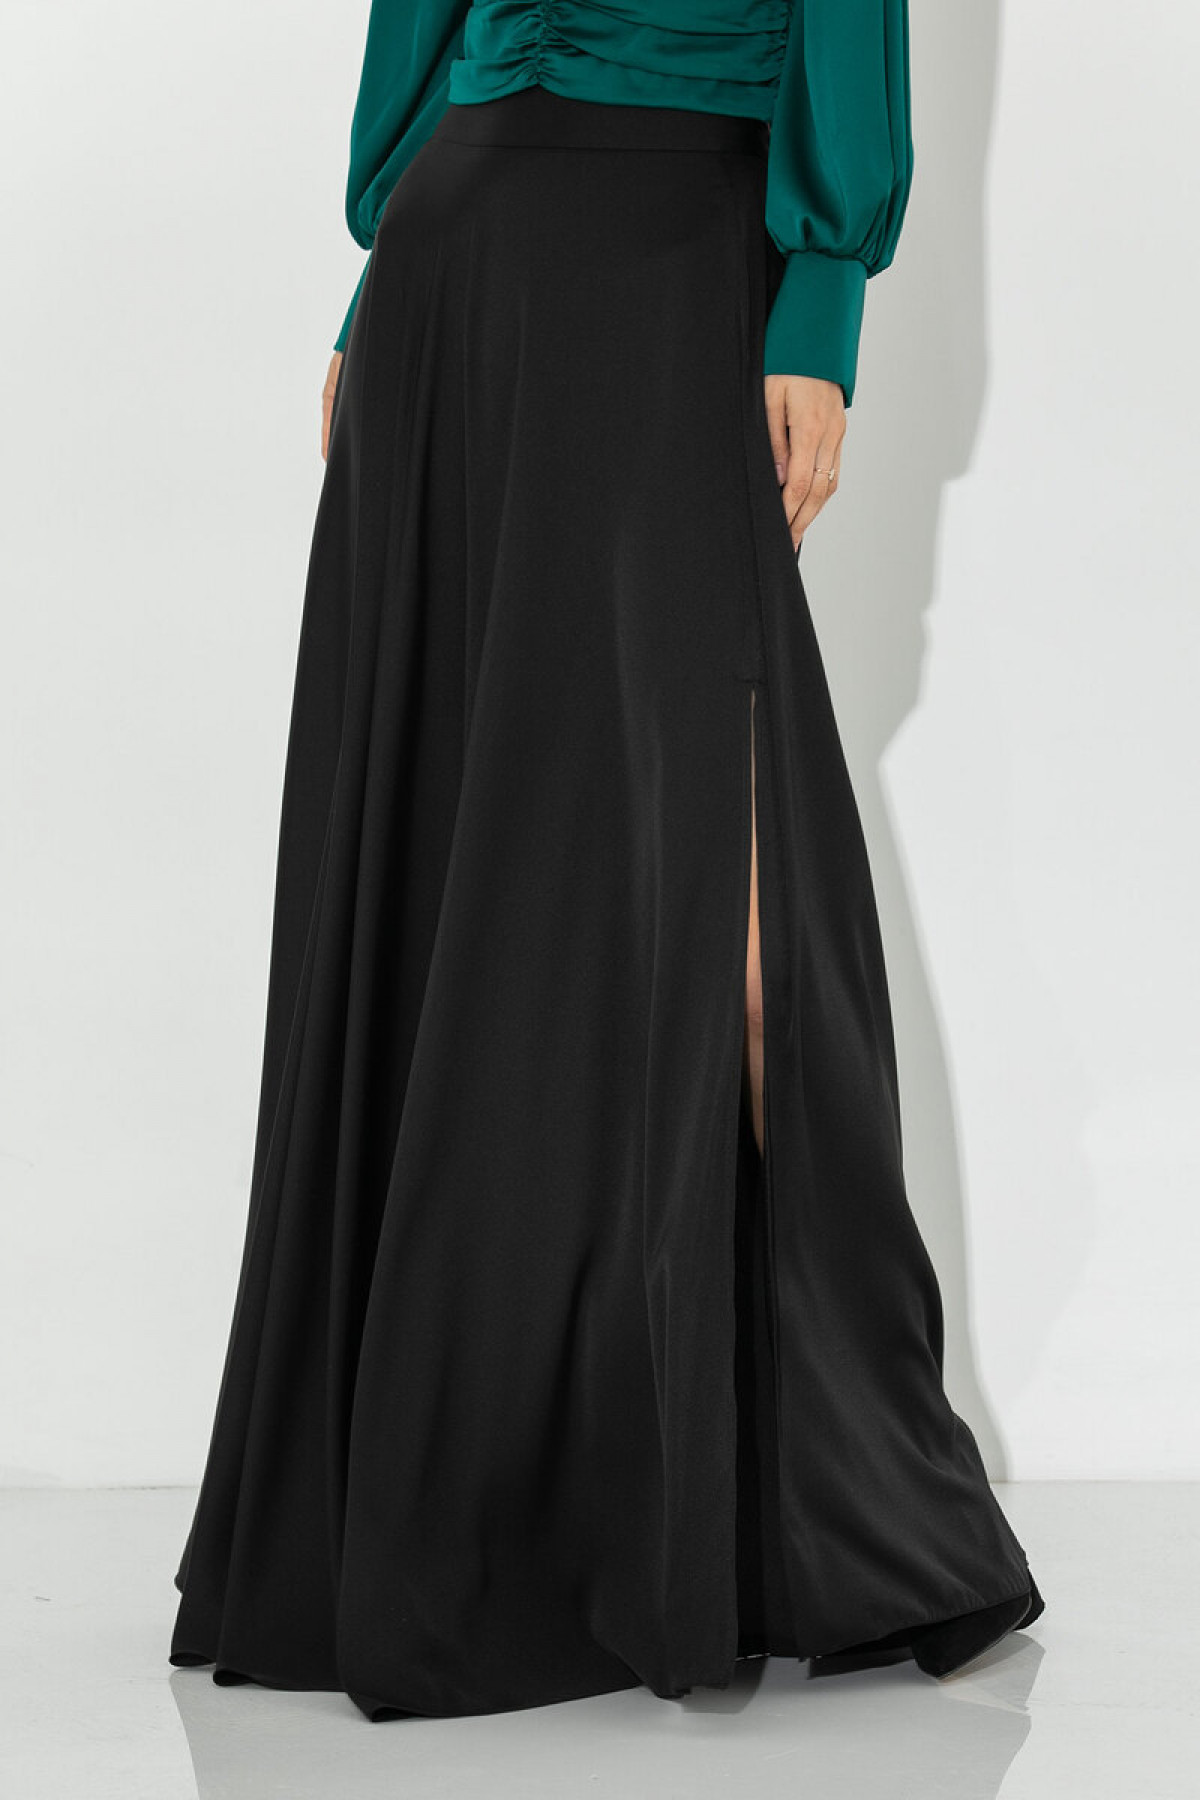 BLACK SATIN MAXI SKIRT